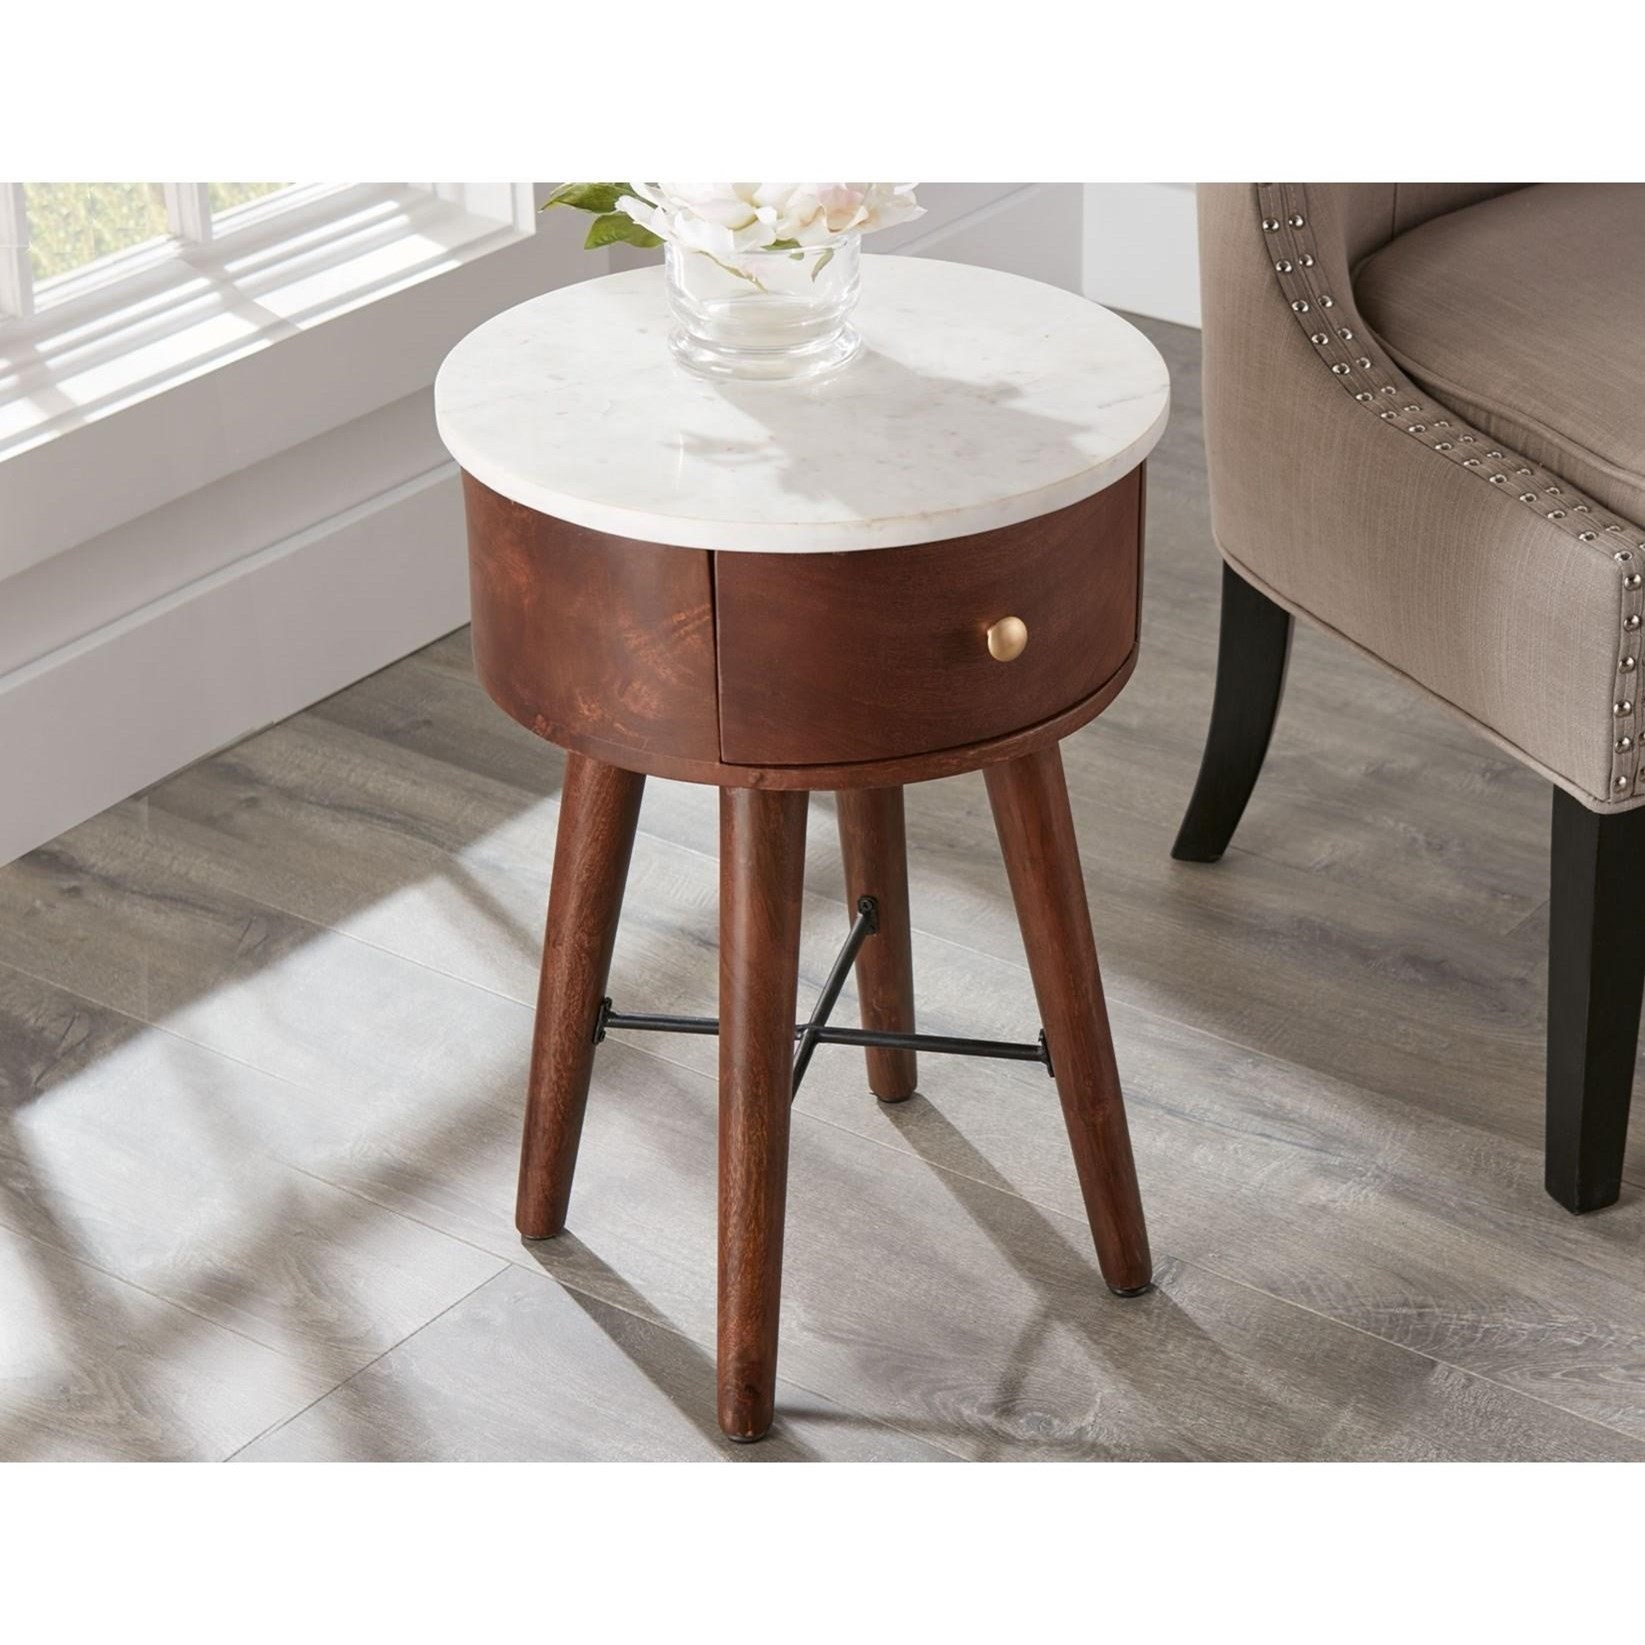 Transitional White Marble Top Accent Table with Drawer